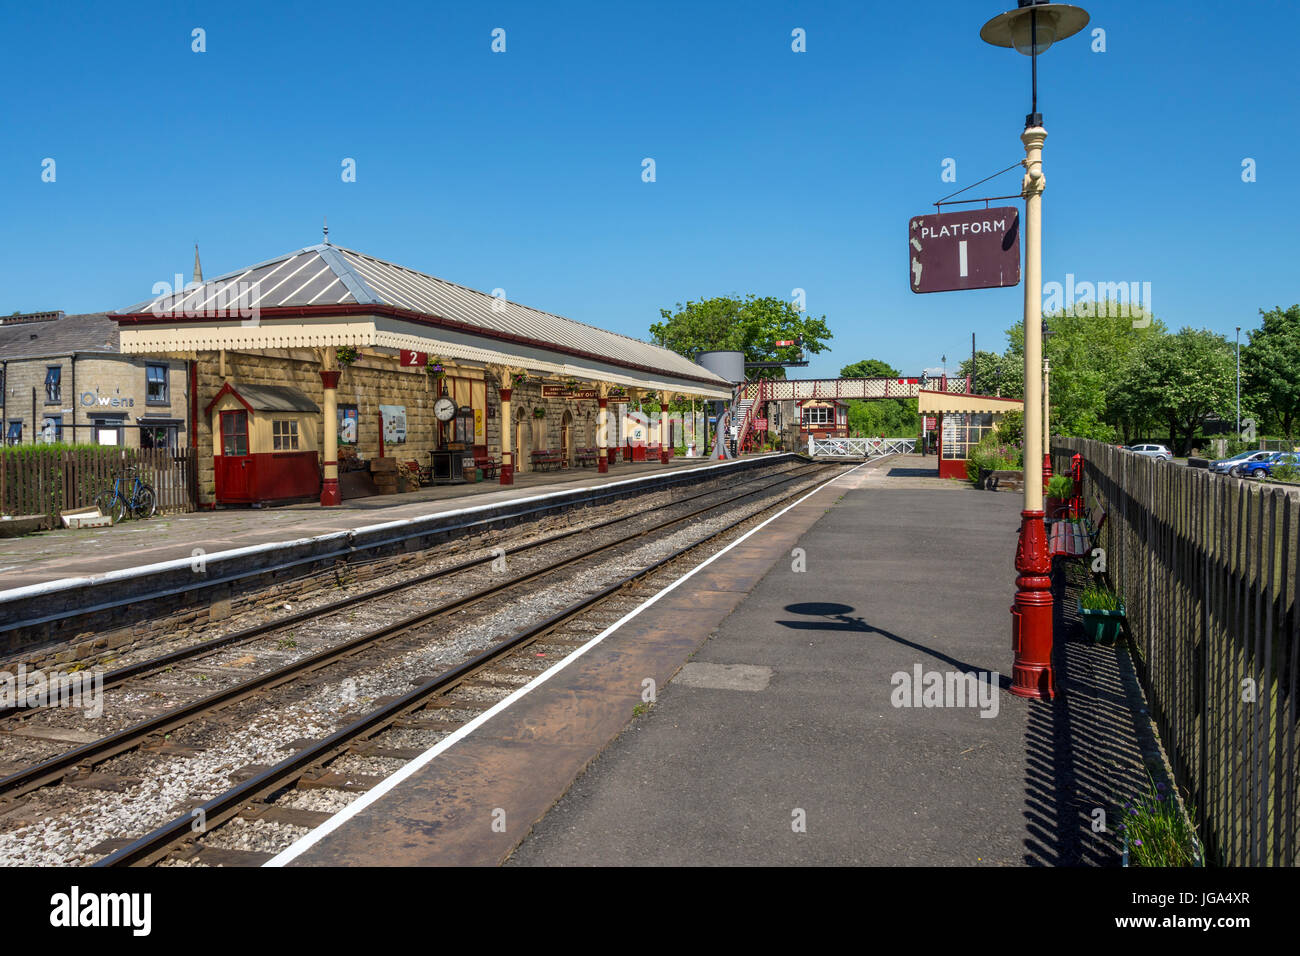 Ramsbottom station, on the East Lancashire Railway, near Bury, Greater Manchester, UK. Stock Photo